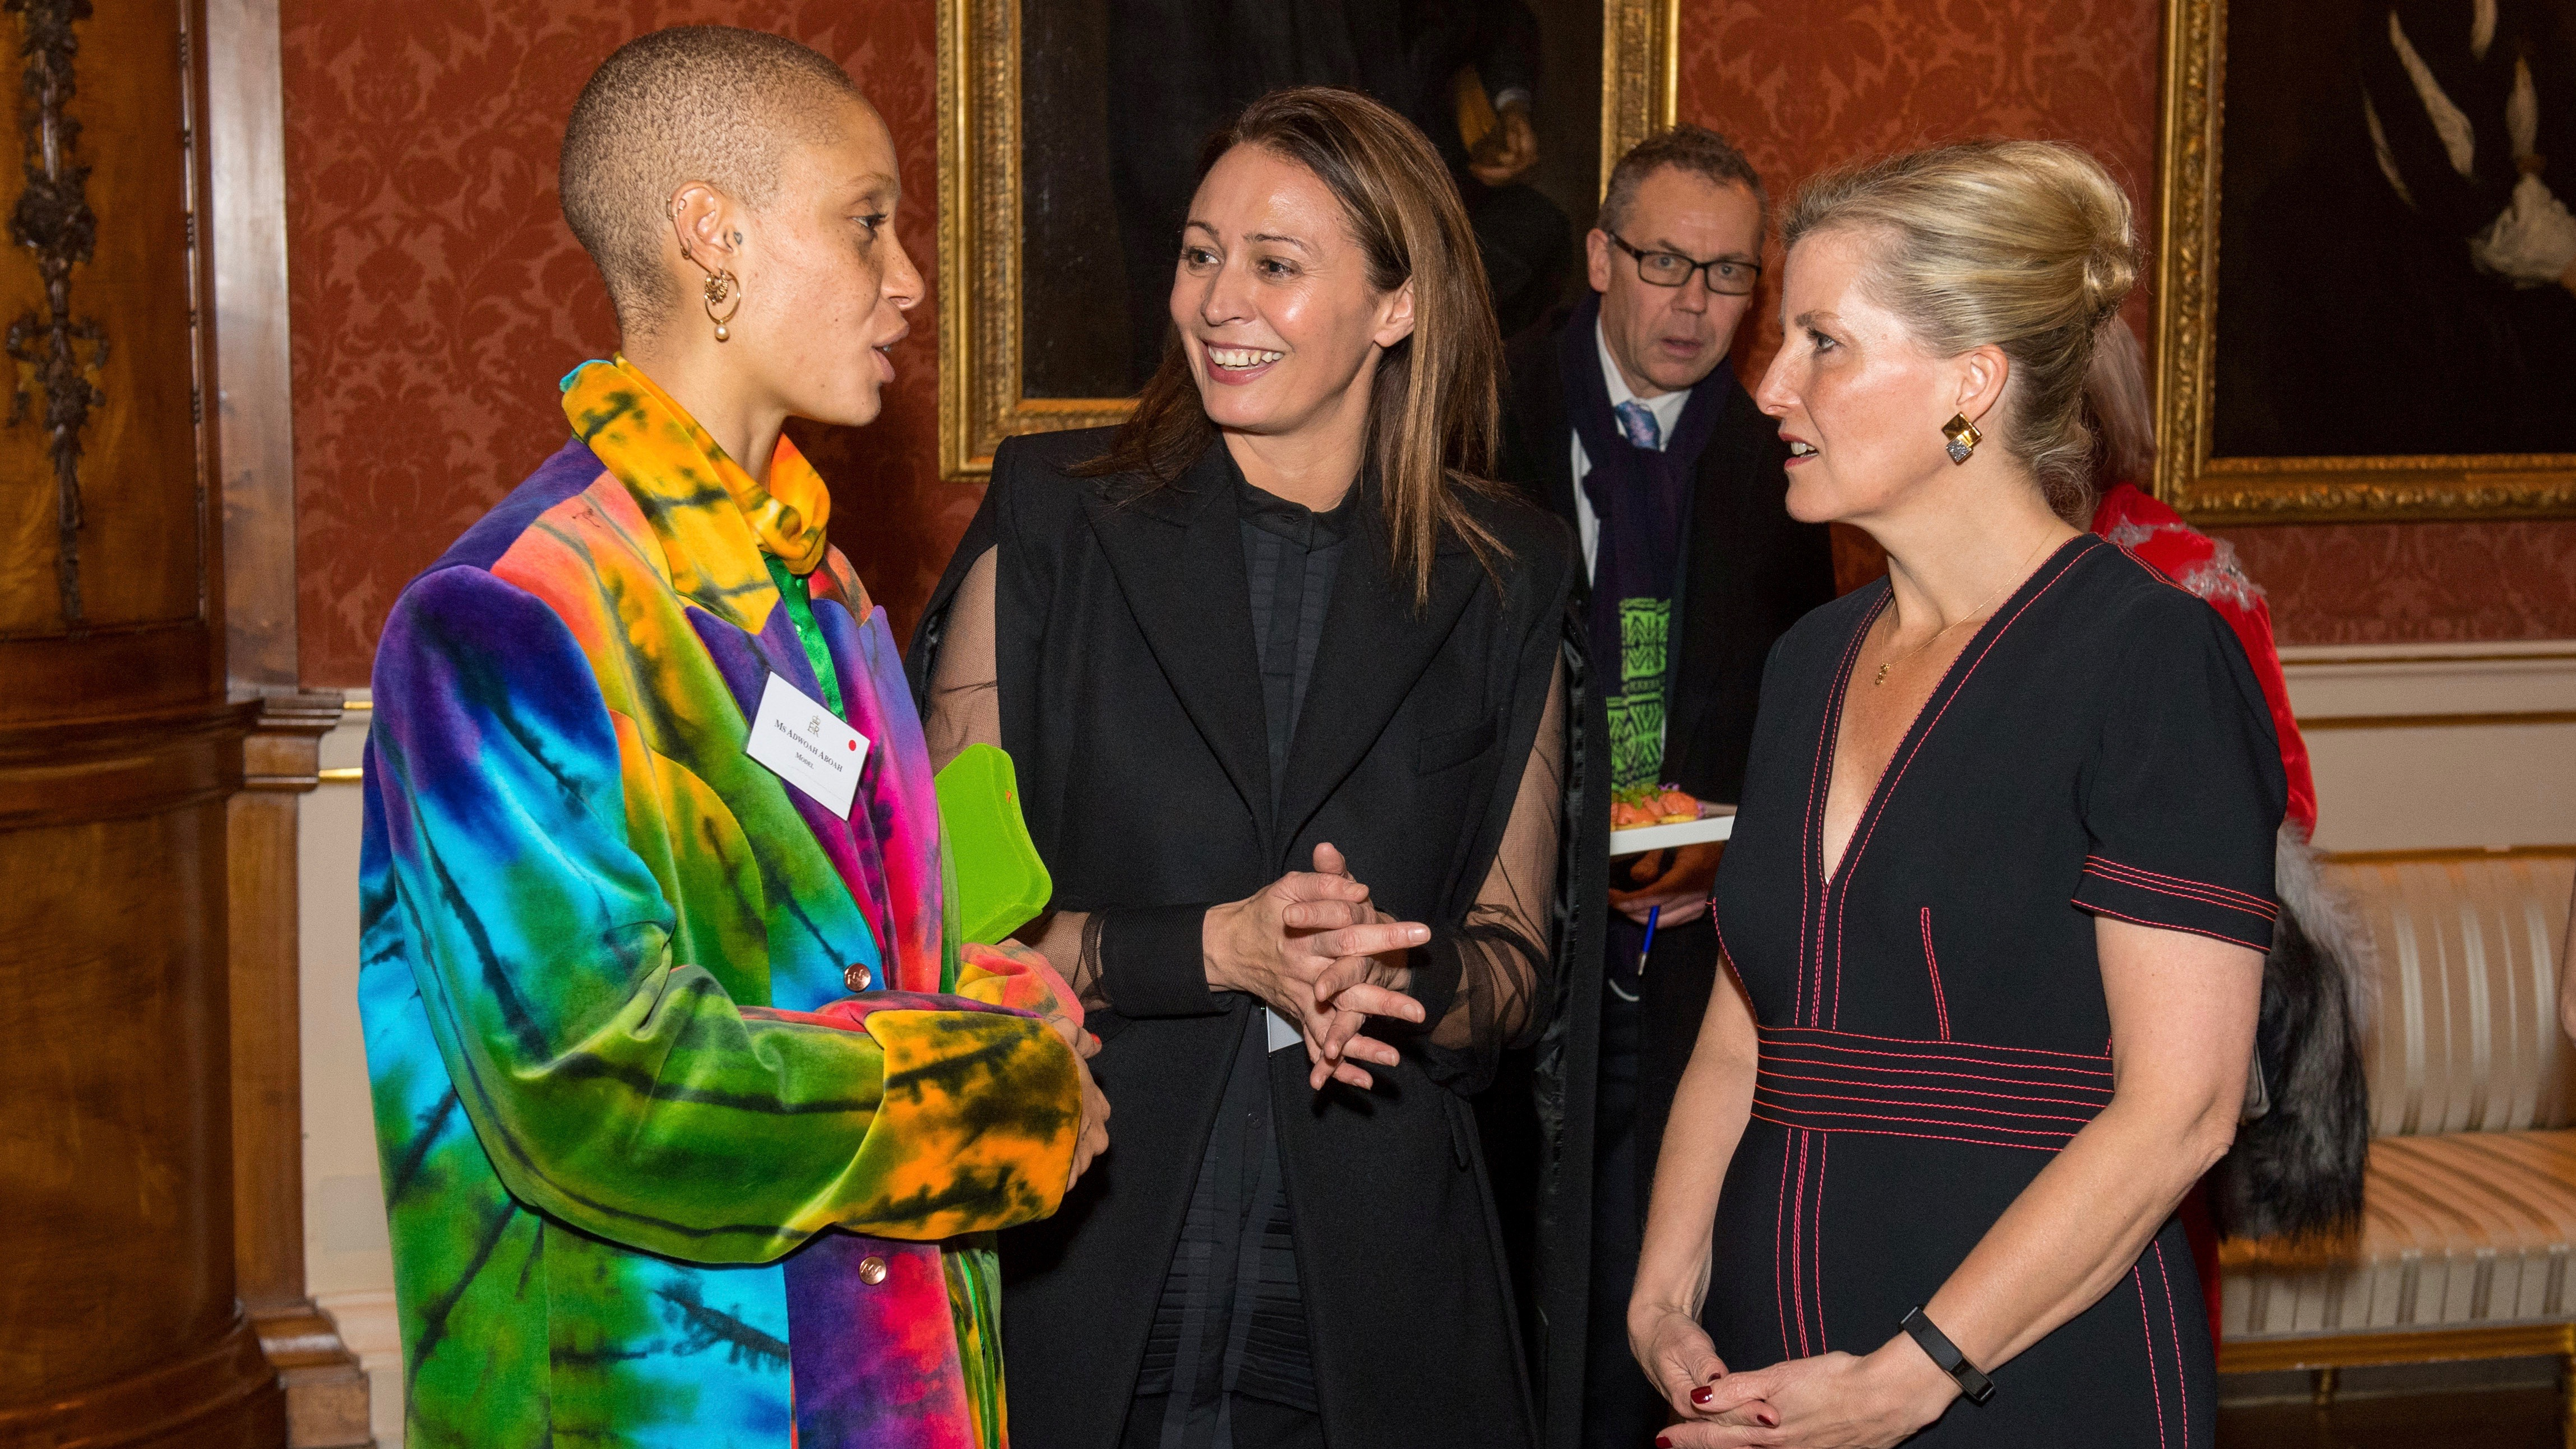 Royalty and models at the British Fashion Exchange.